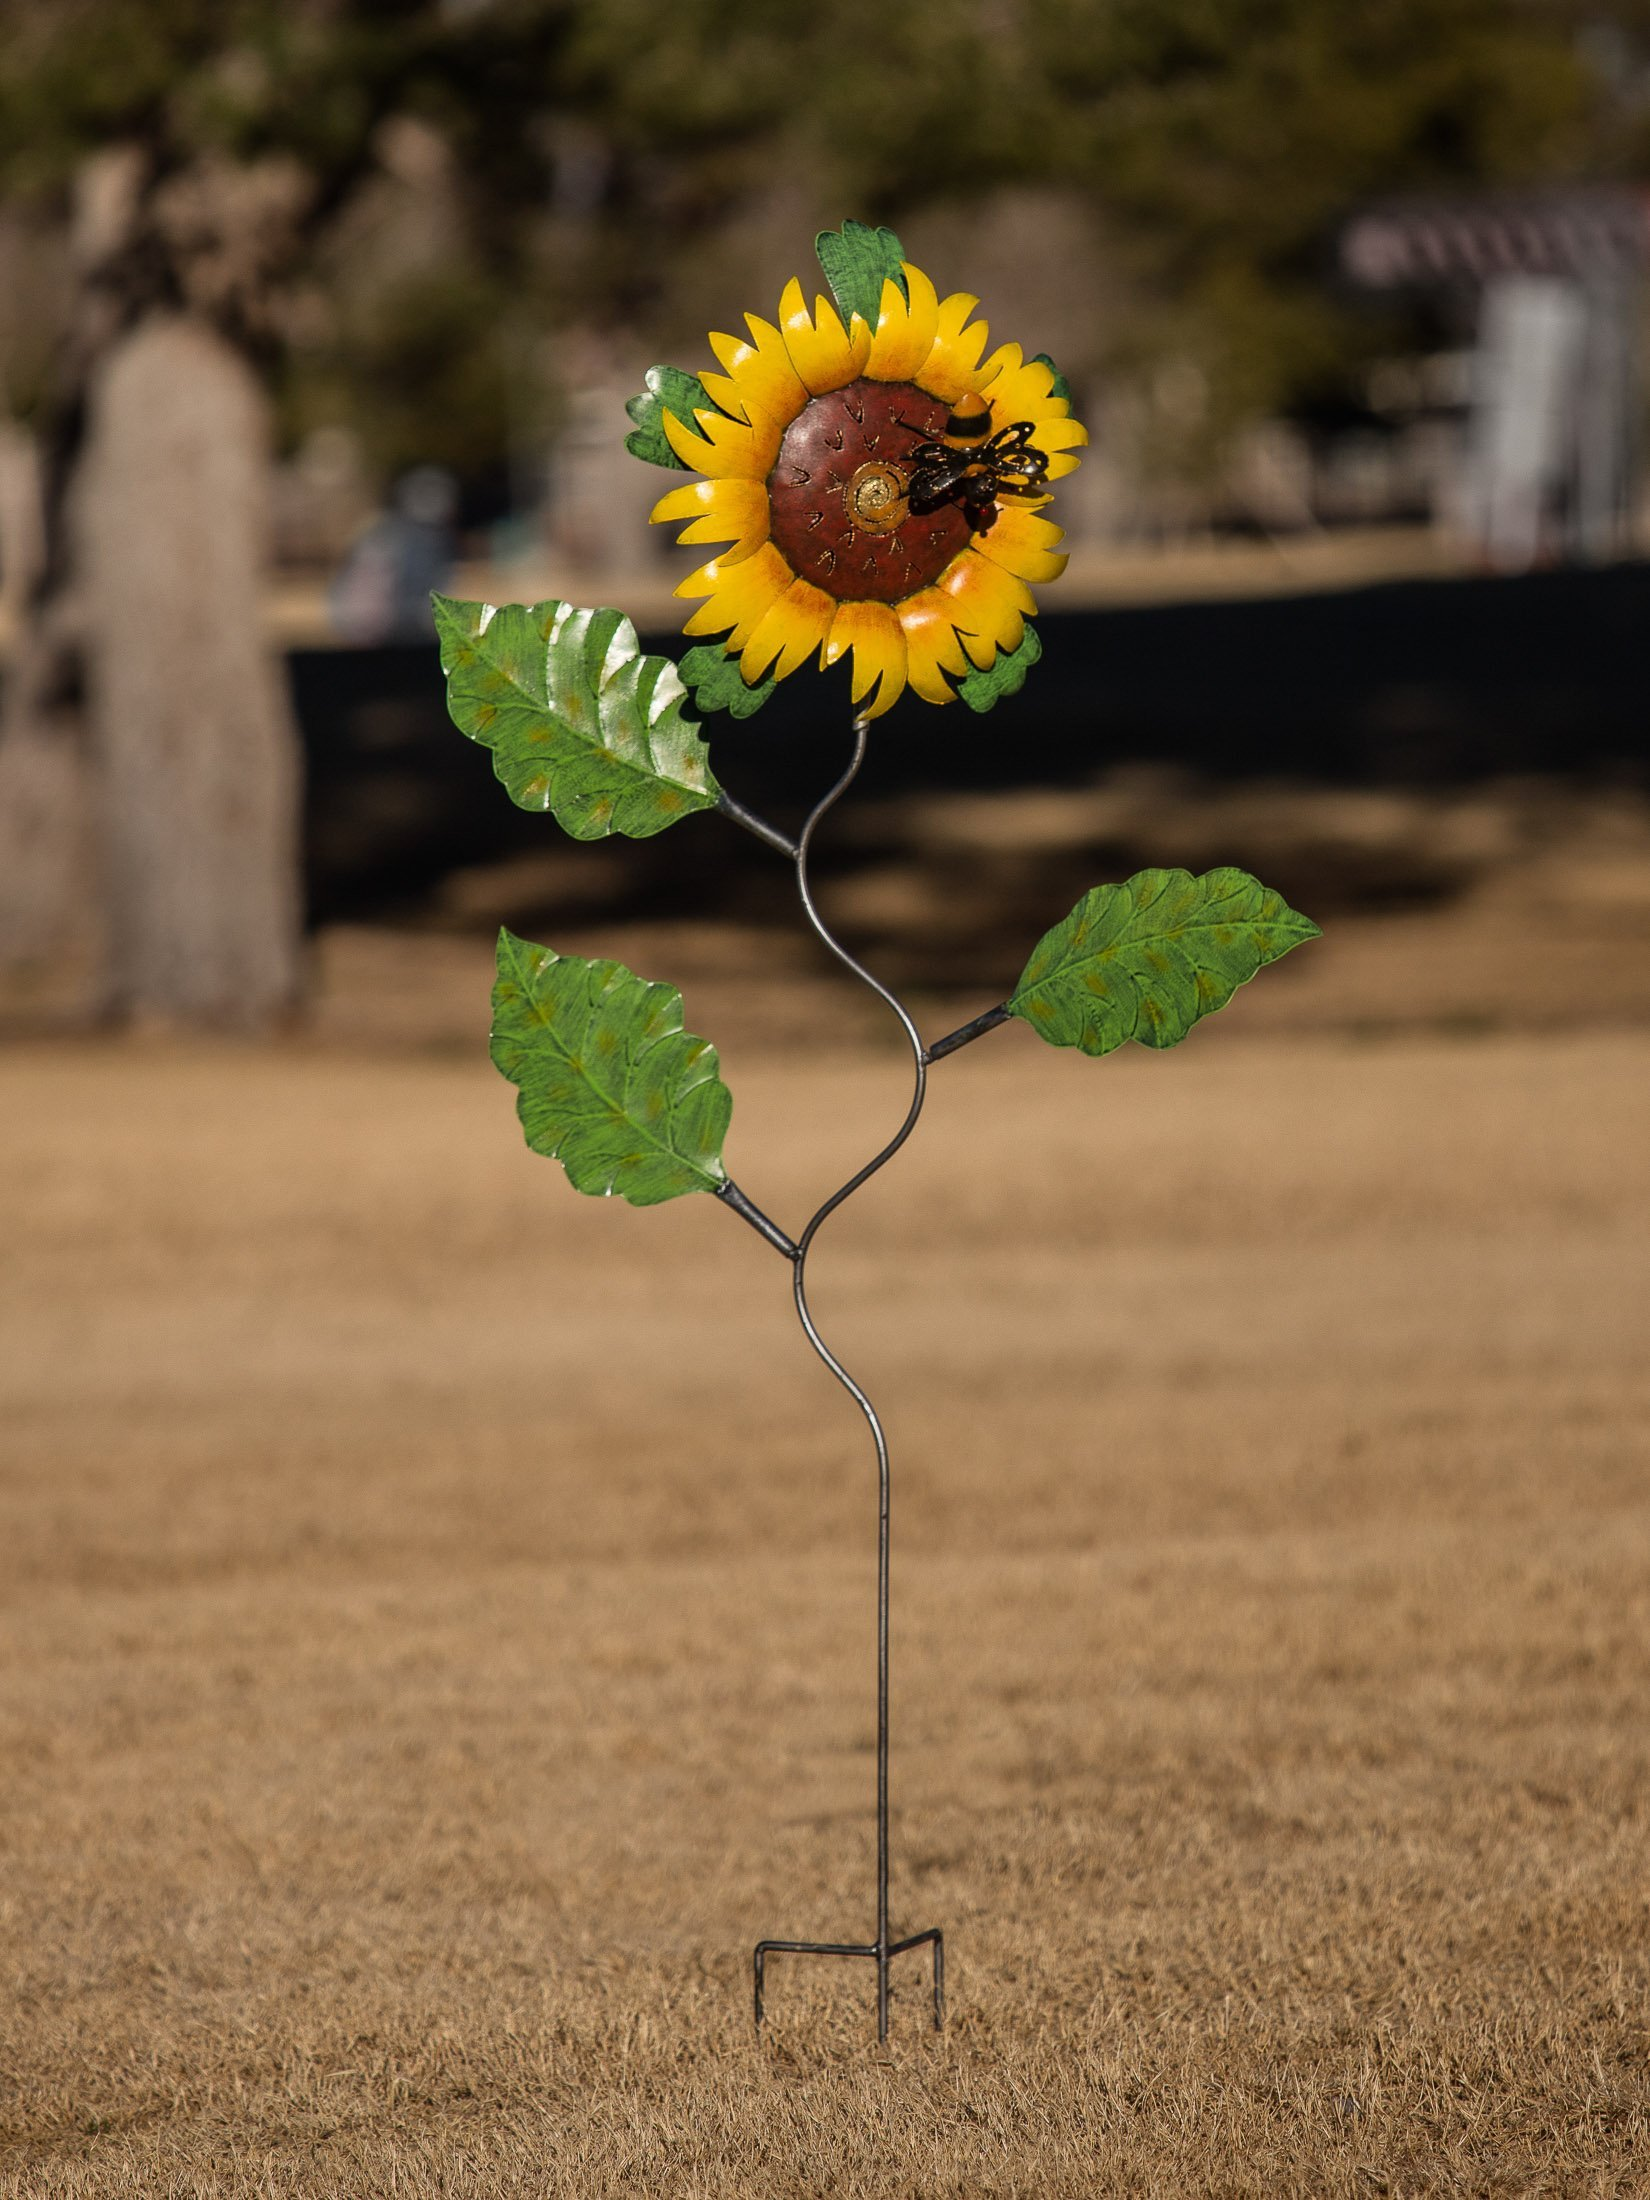 Bali Garden Handmade Iron Garden Stake - Sunflower and Bee